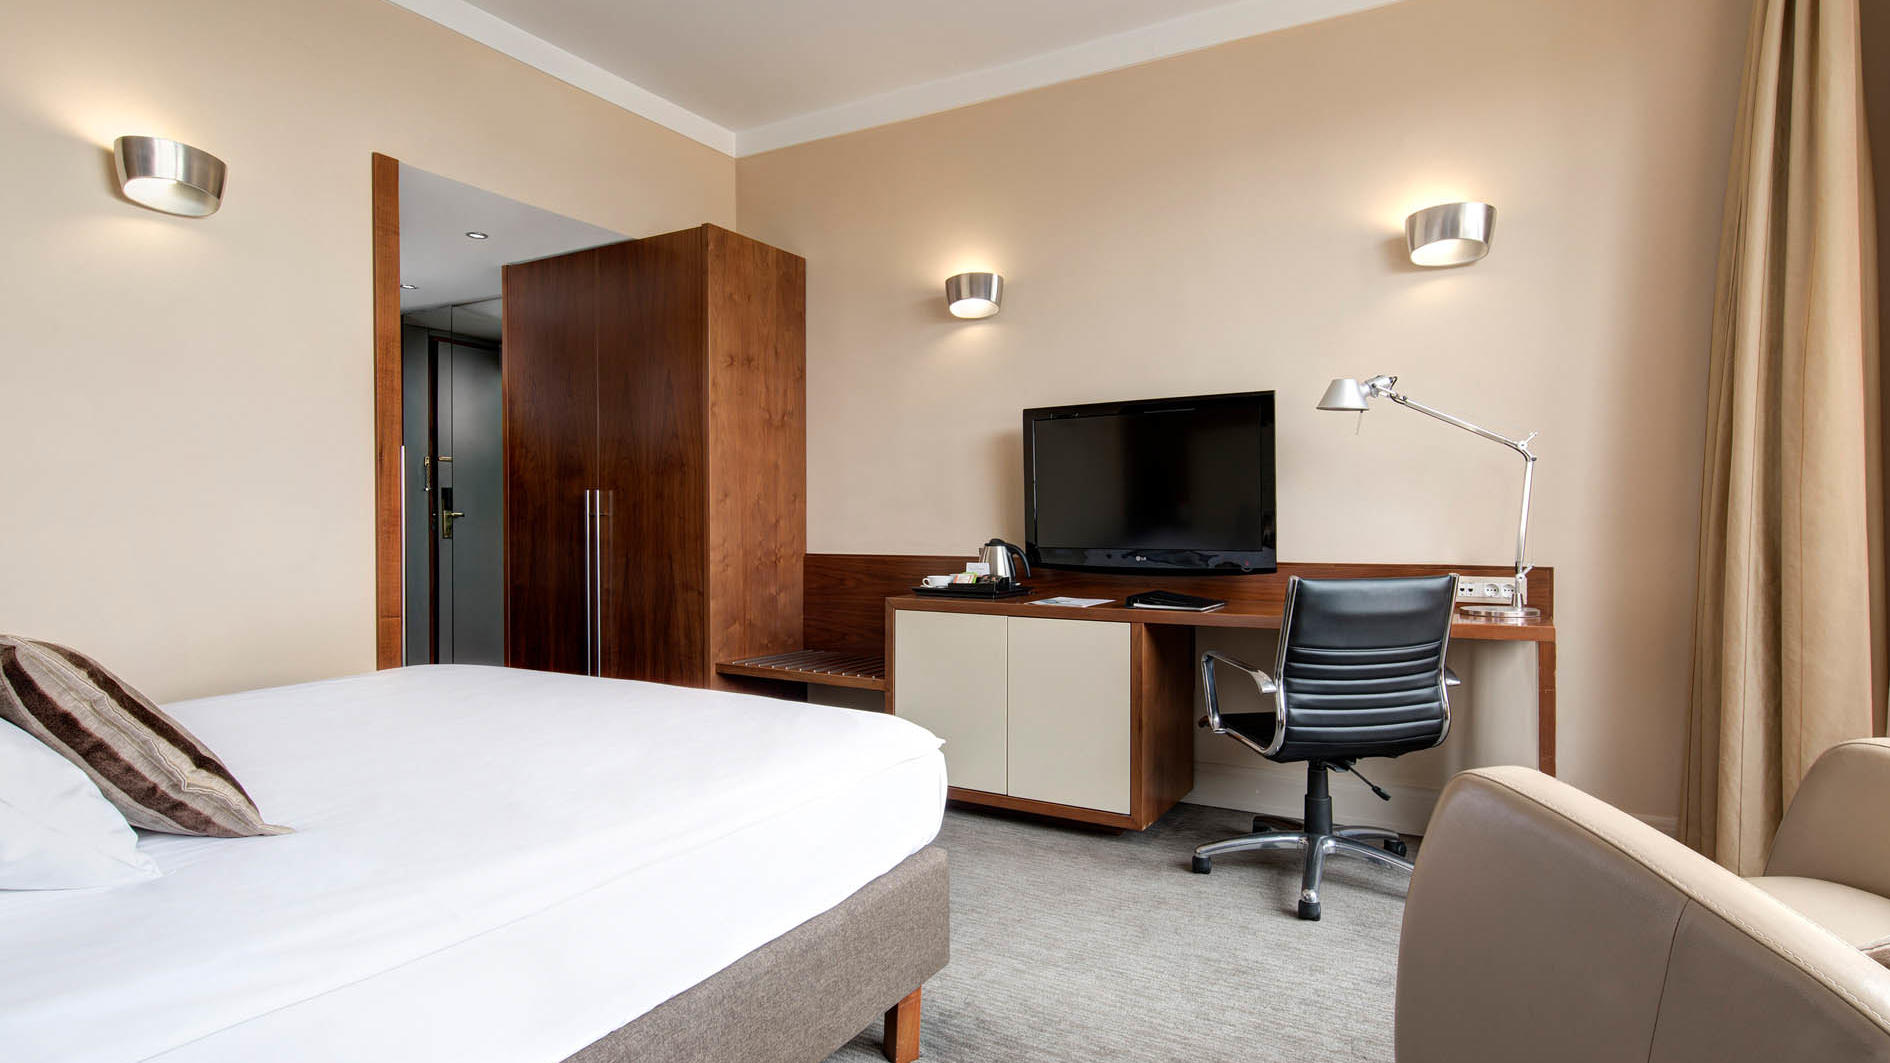 Executive Queen Room at UHotel in Ljubljana